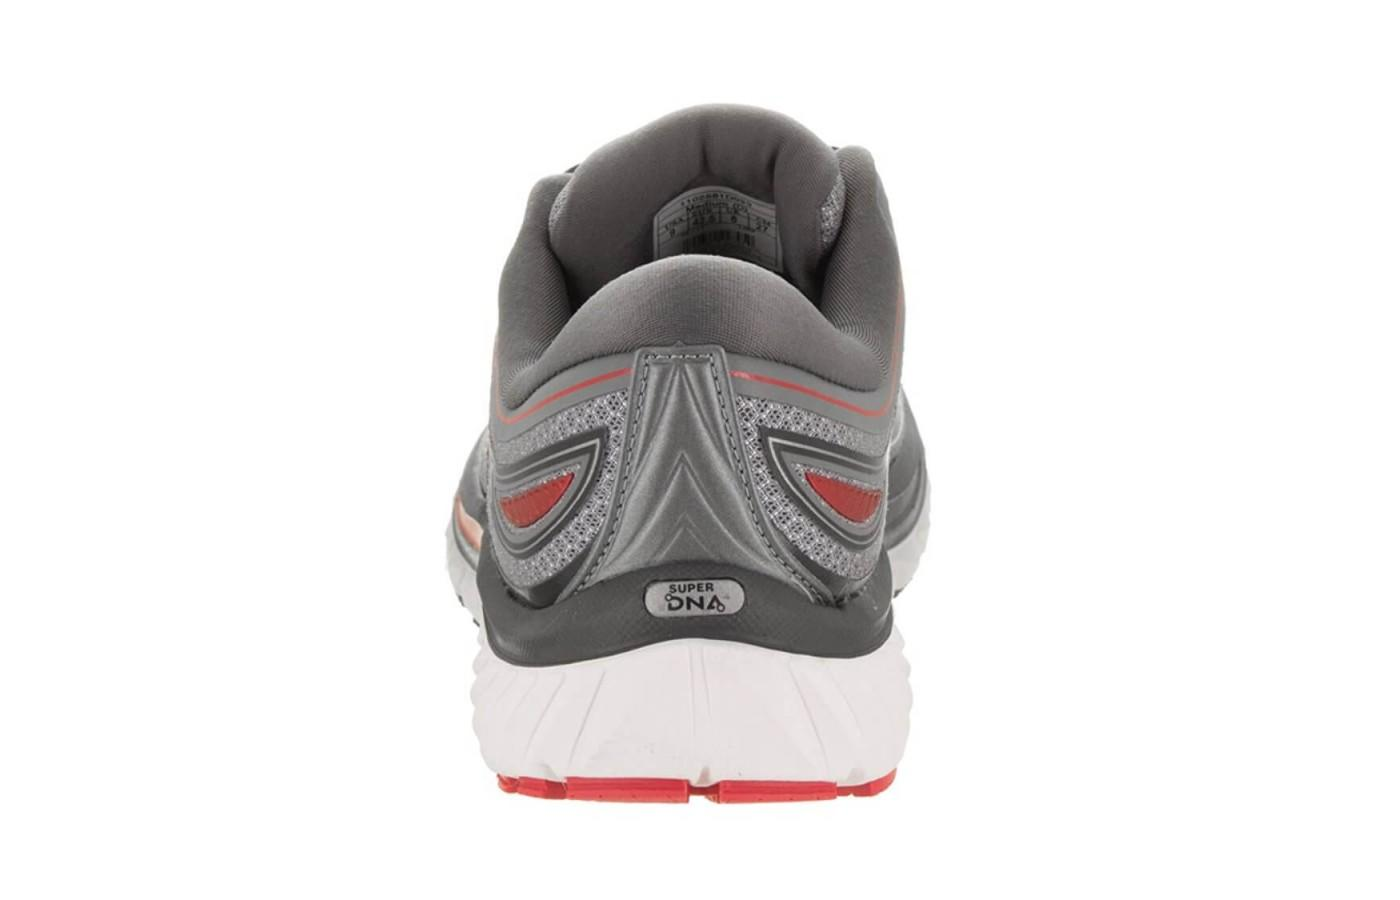 The Brooks Glycerin 15 has a 10mm drop